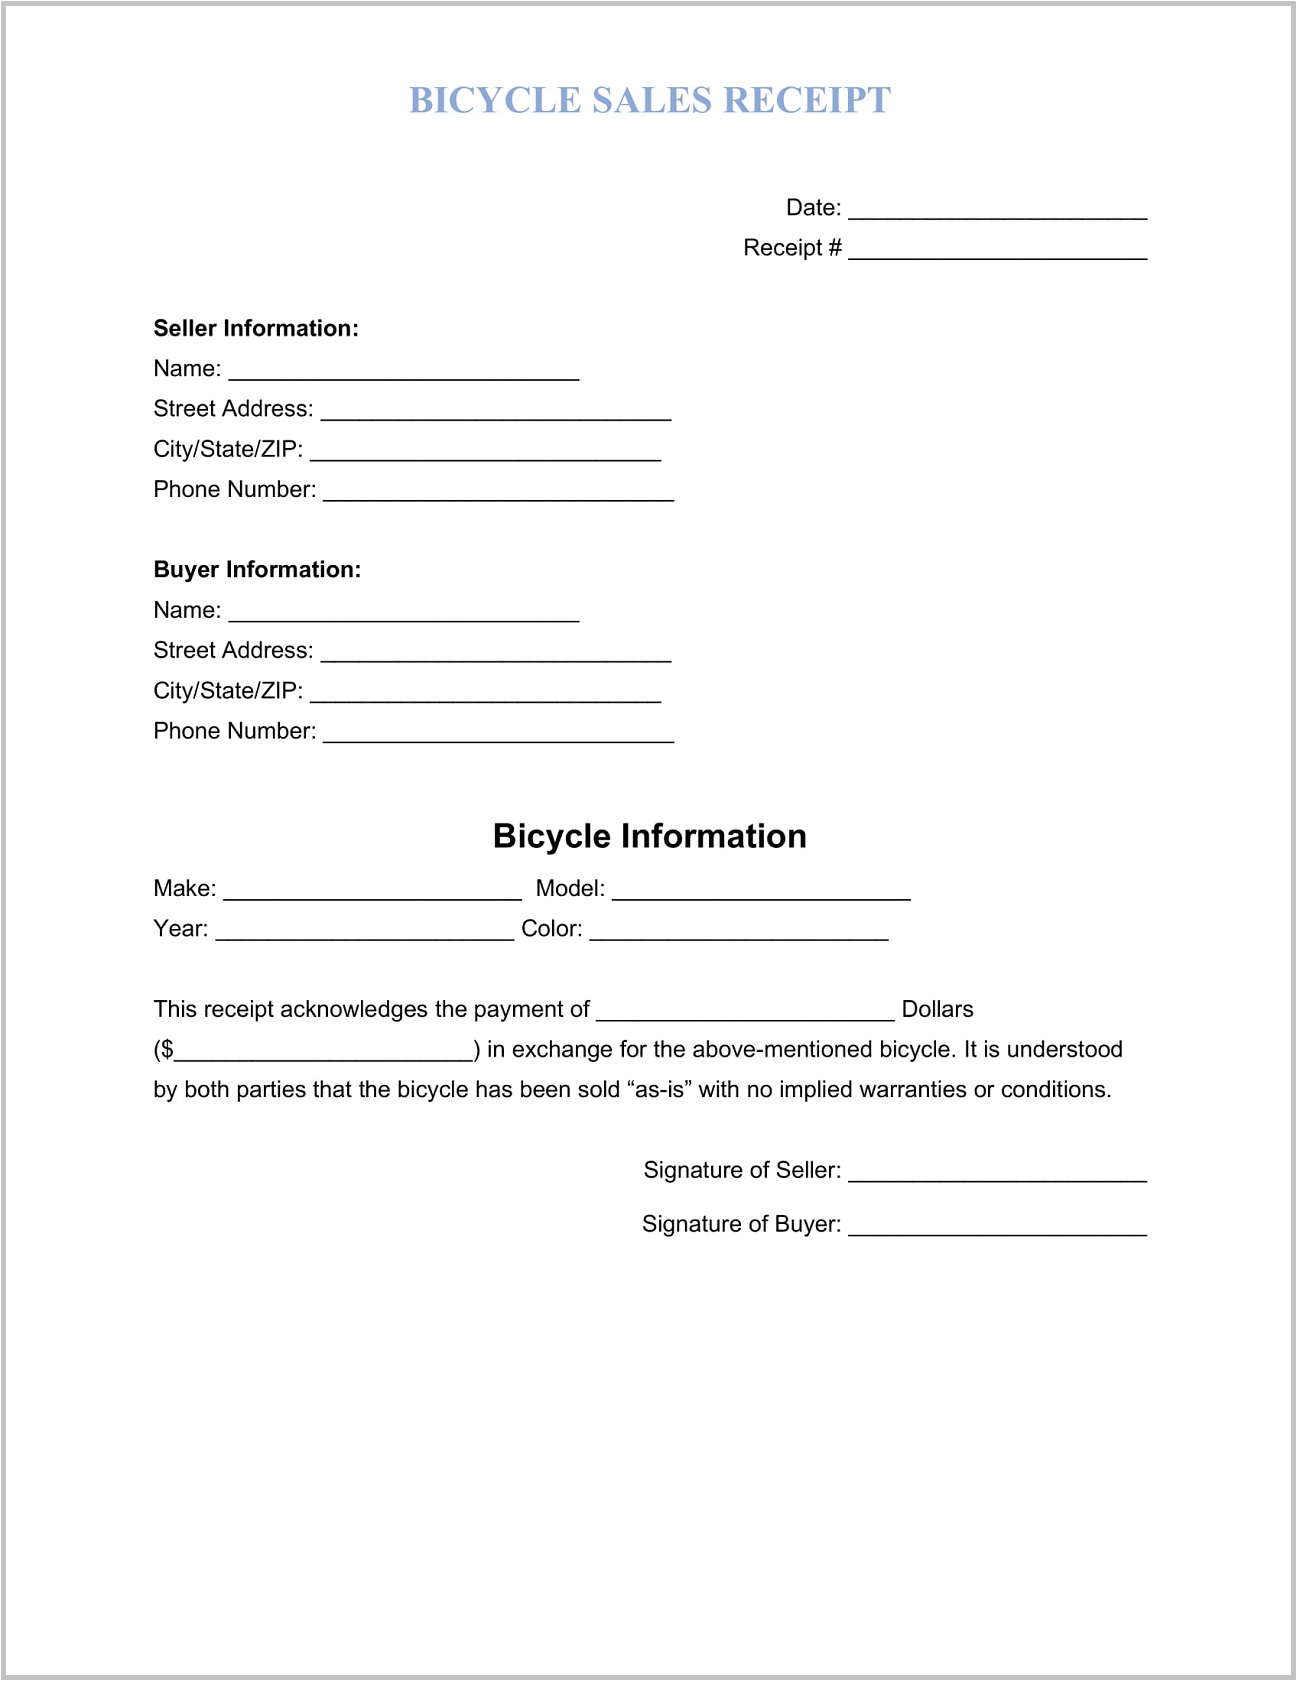 Bicycle Sales Receipt Template Word Form